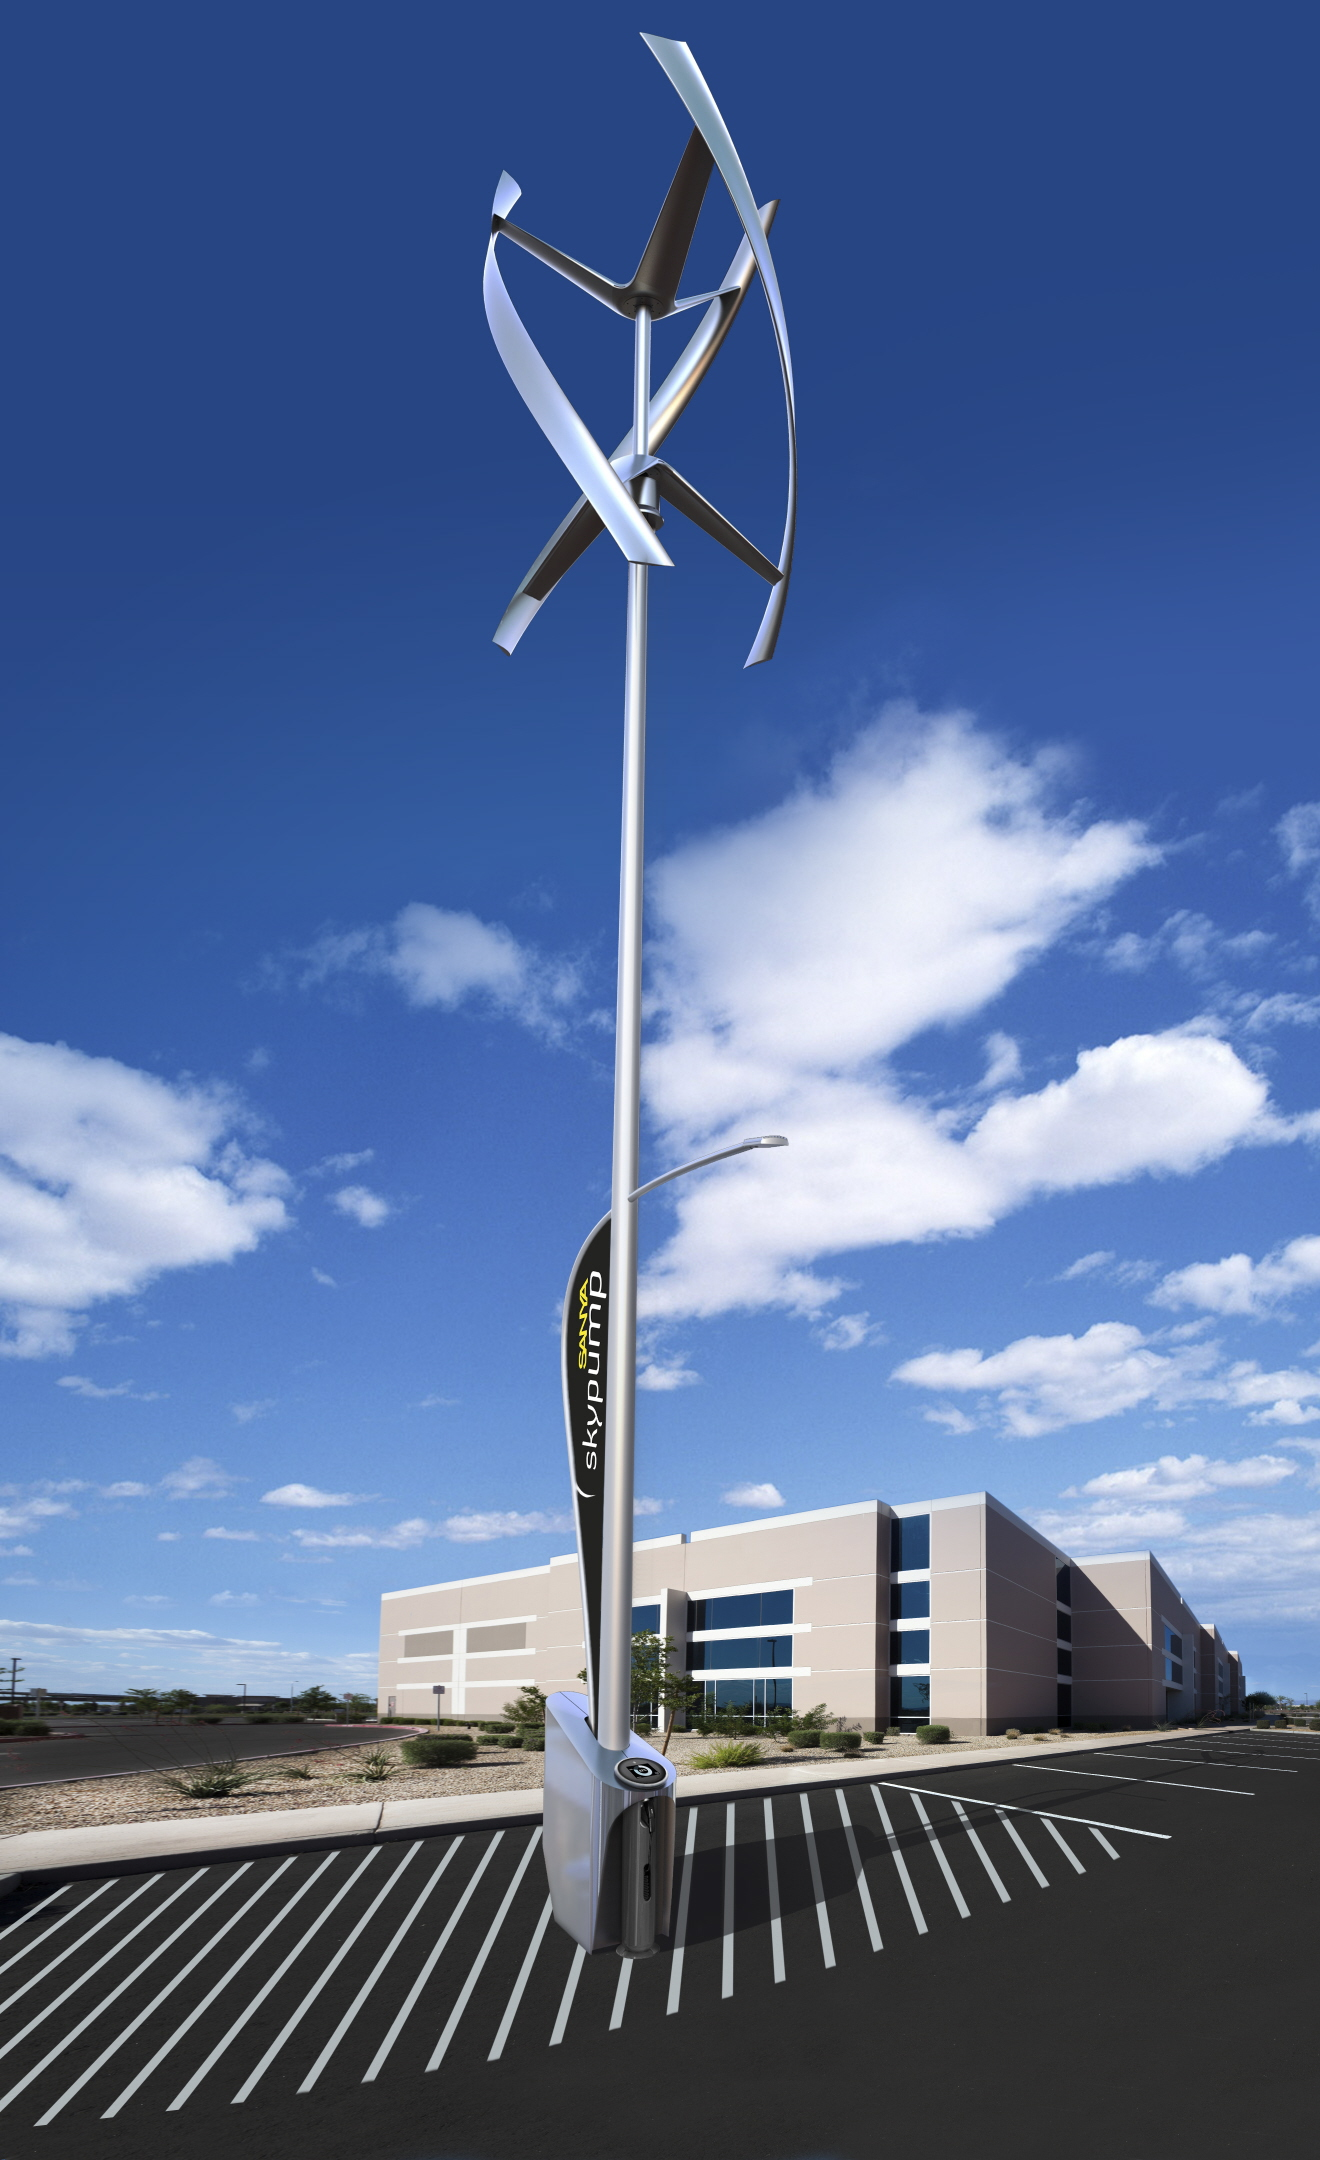 Ge Skypump Charges Electric Cars With Wind Power